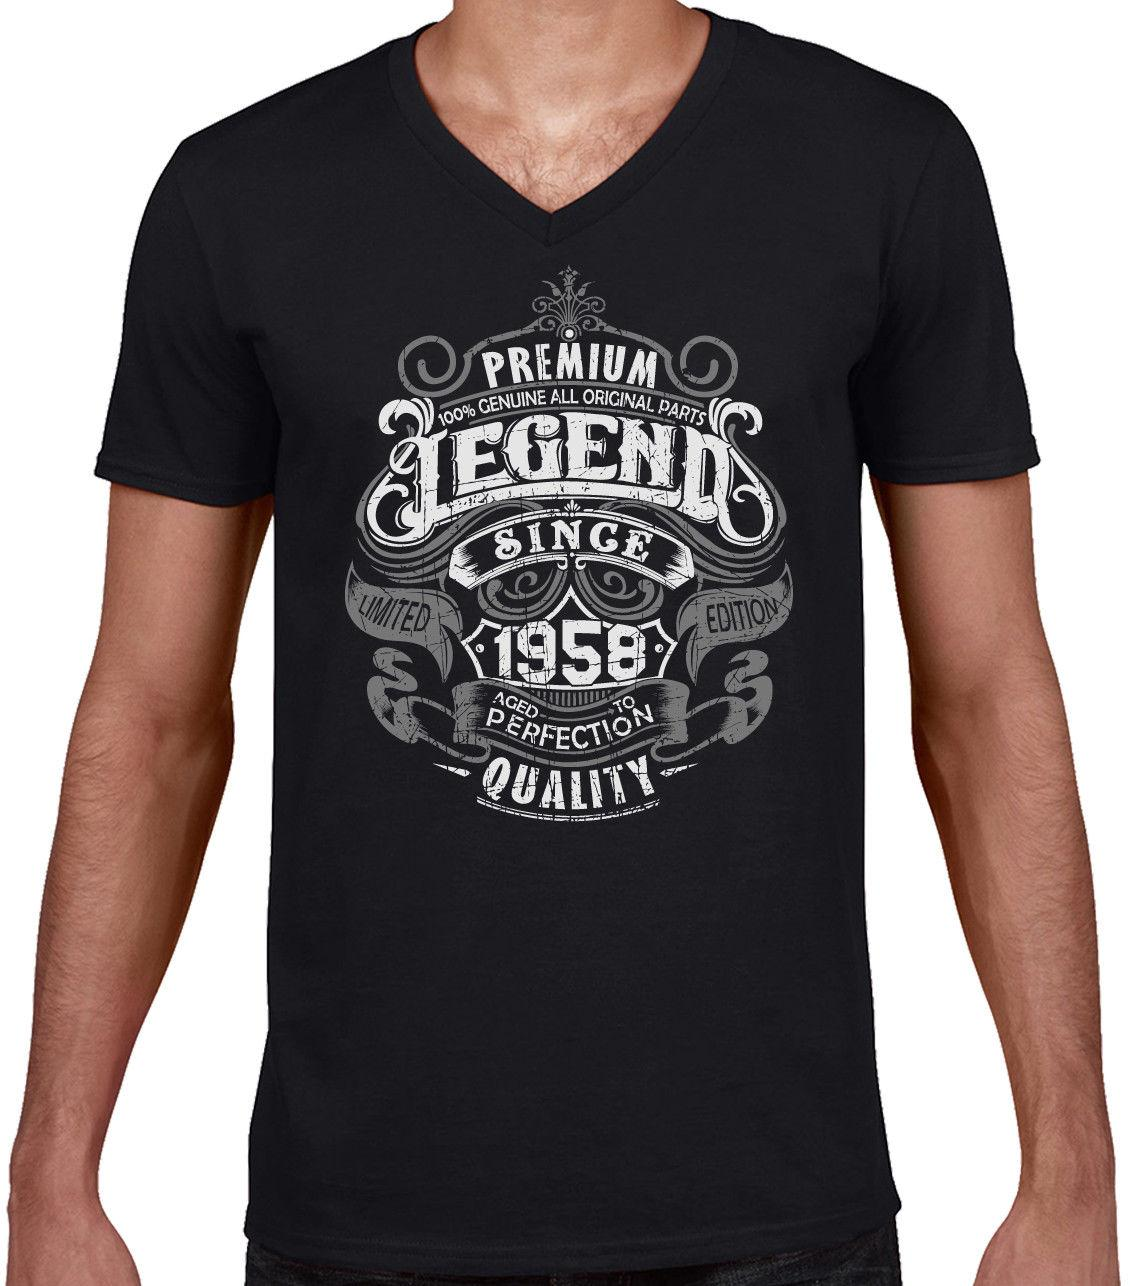 983c2ee0f Premium Legend Since 1958 60th Birthday Mens Funny T Shirt 60 Year Old Top  Gift Best T Shirt Sites T Shirt Shopping From Tomseng, $11.01| DHgate.Com